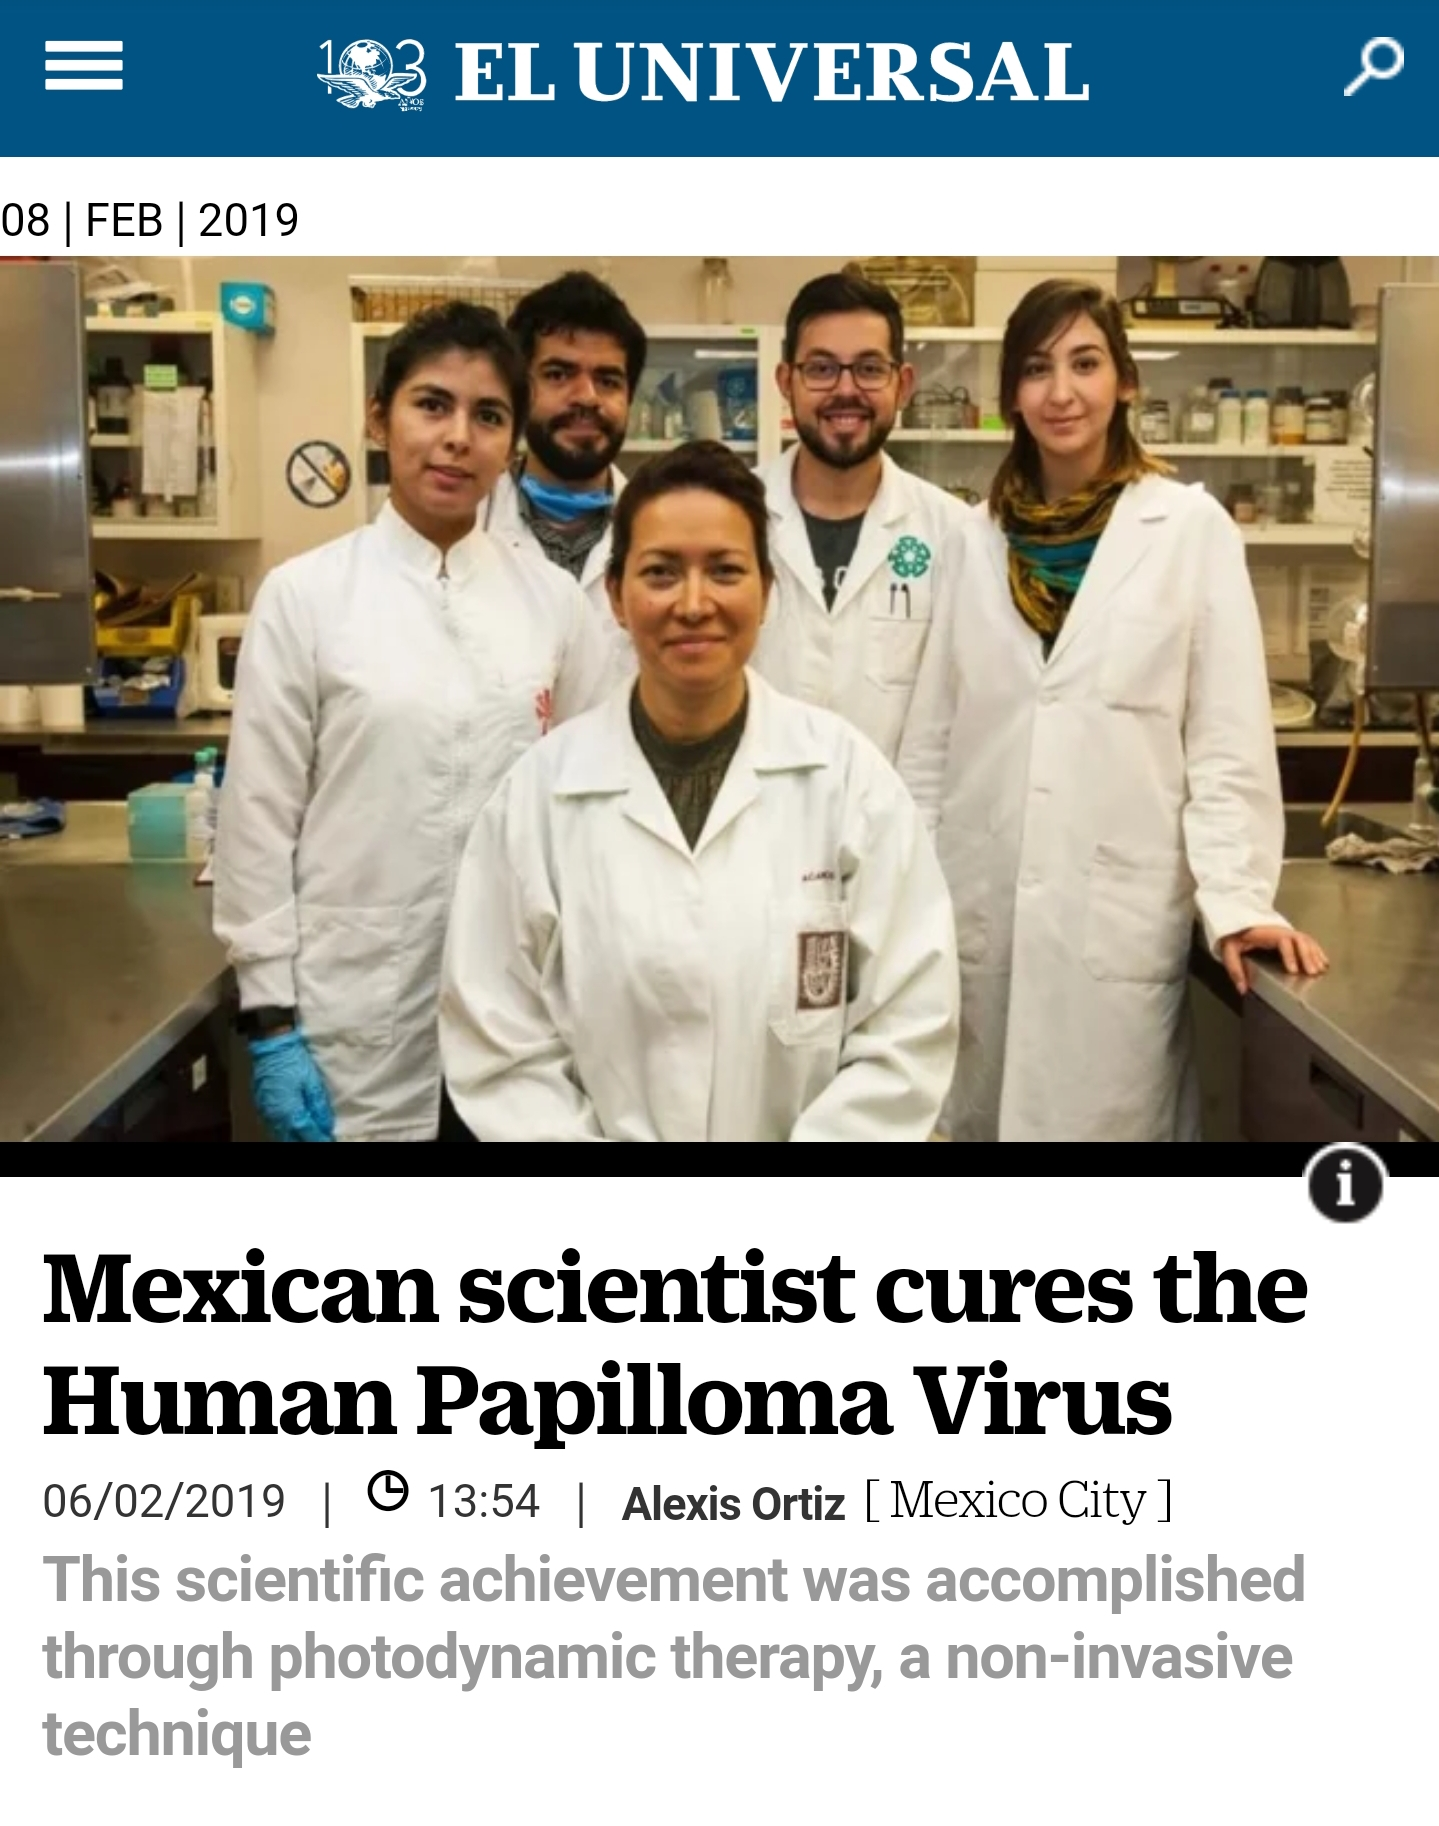 hpv cure by mexican